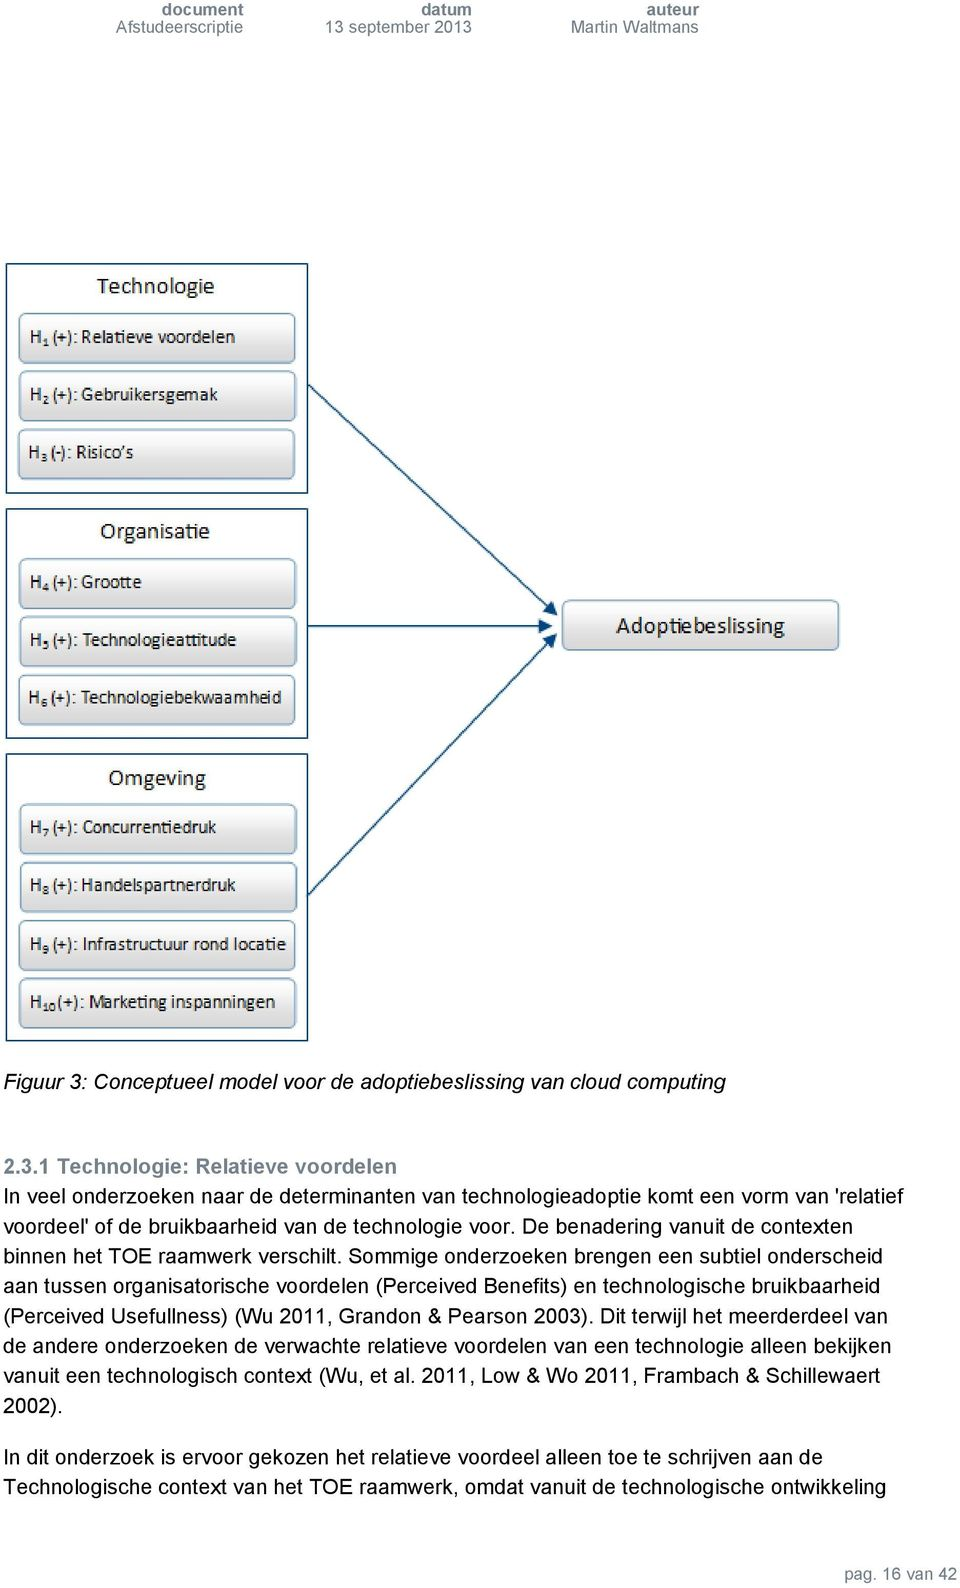 Sommige onderzoeken brengen een subtiel onderscheid aan tussen organisatorische voordelen (Perceived Benefits) en technologische bruikbaarheid (Perceived Usefullness) (Wu 2011, Grandon & Pearson